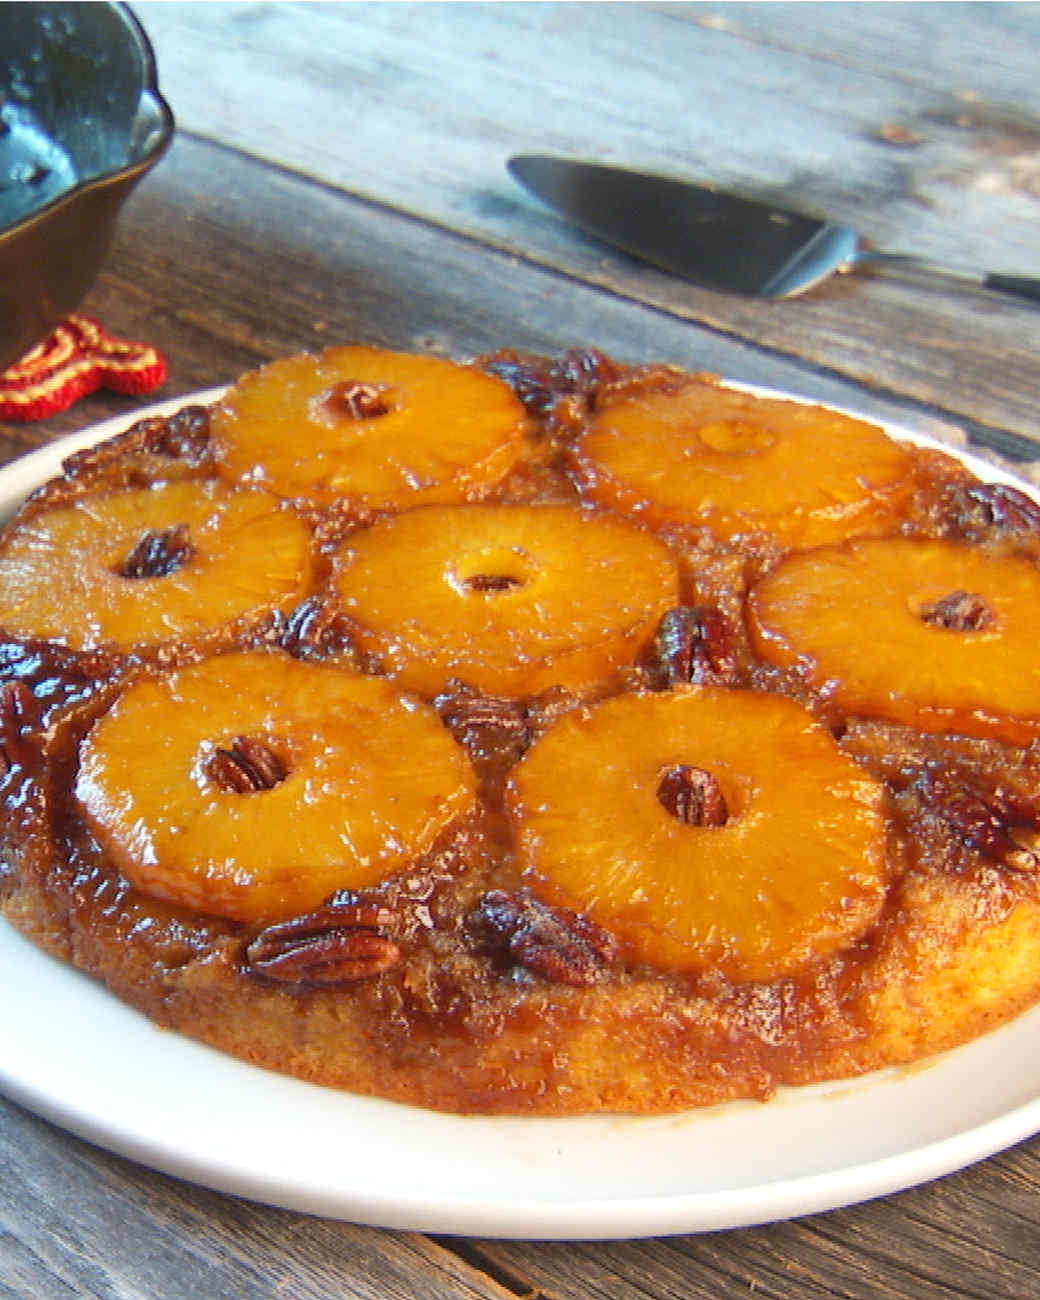 mh_1059_pineapple_upside_down_cake.jpg